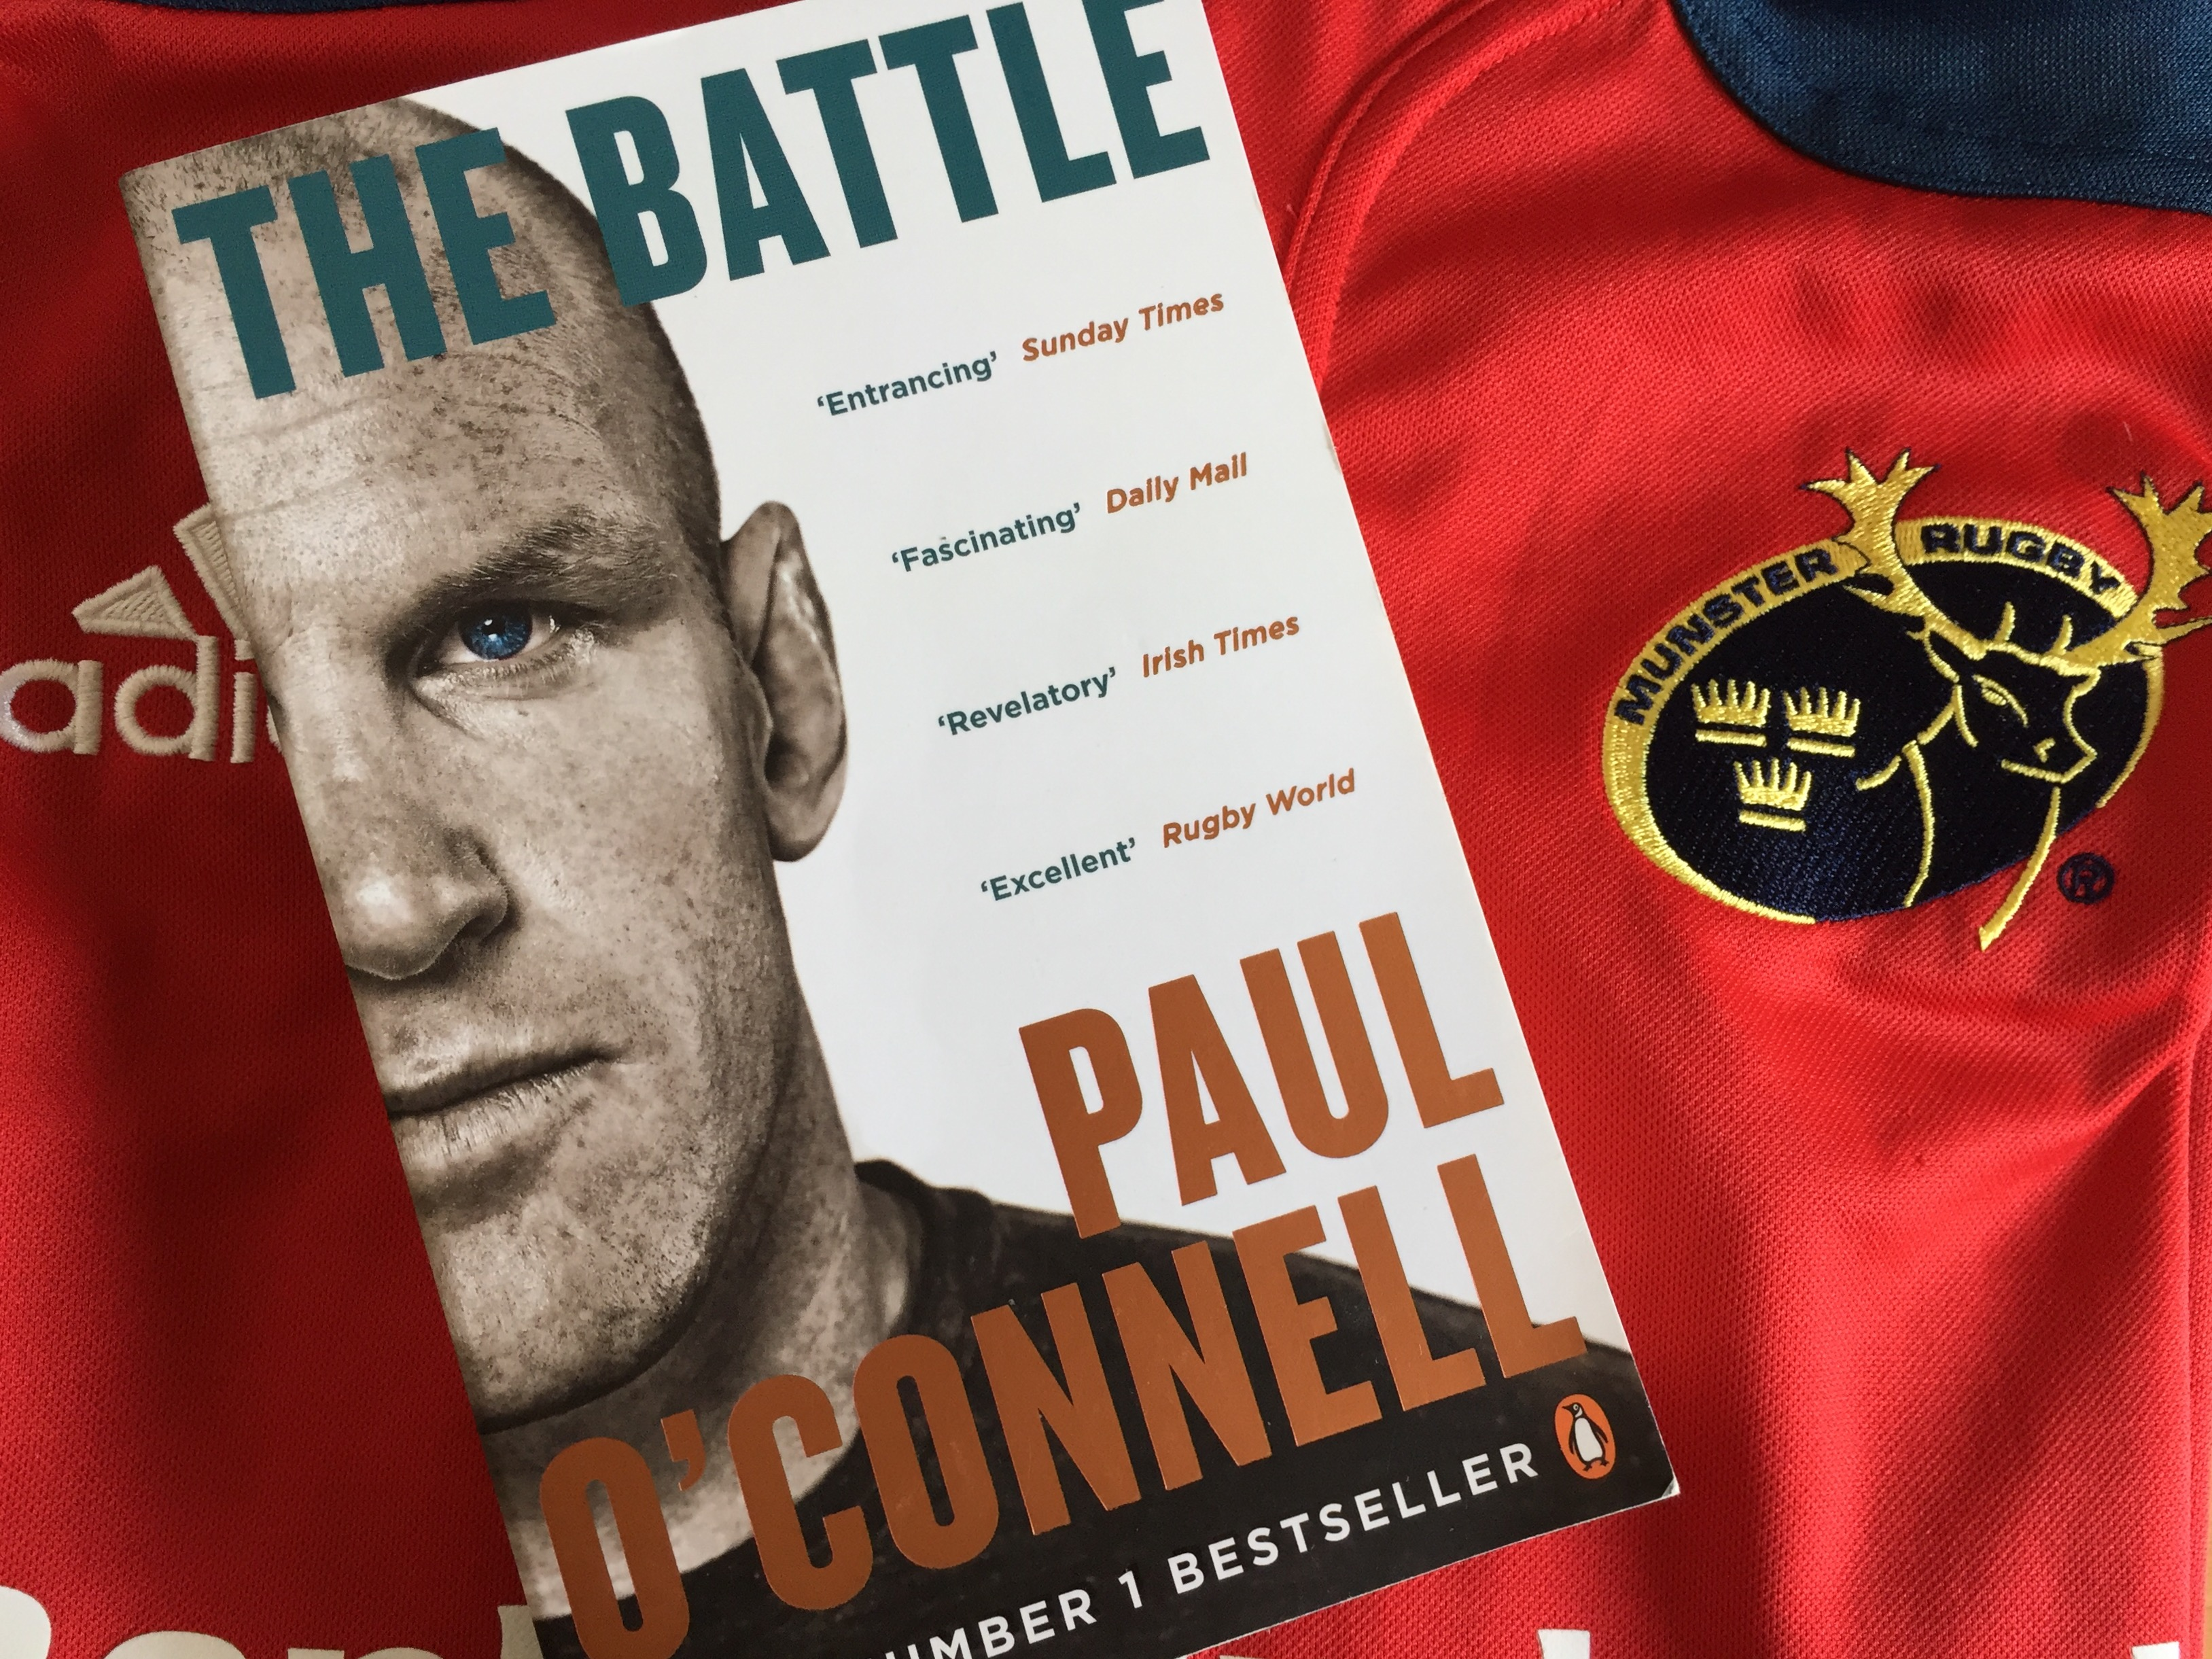 the battle paul o'connell